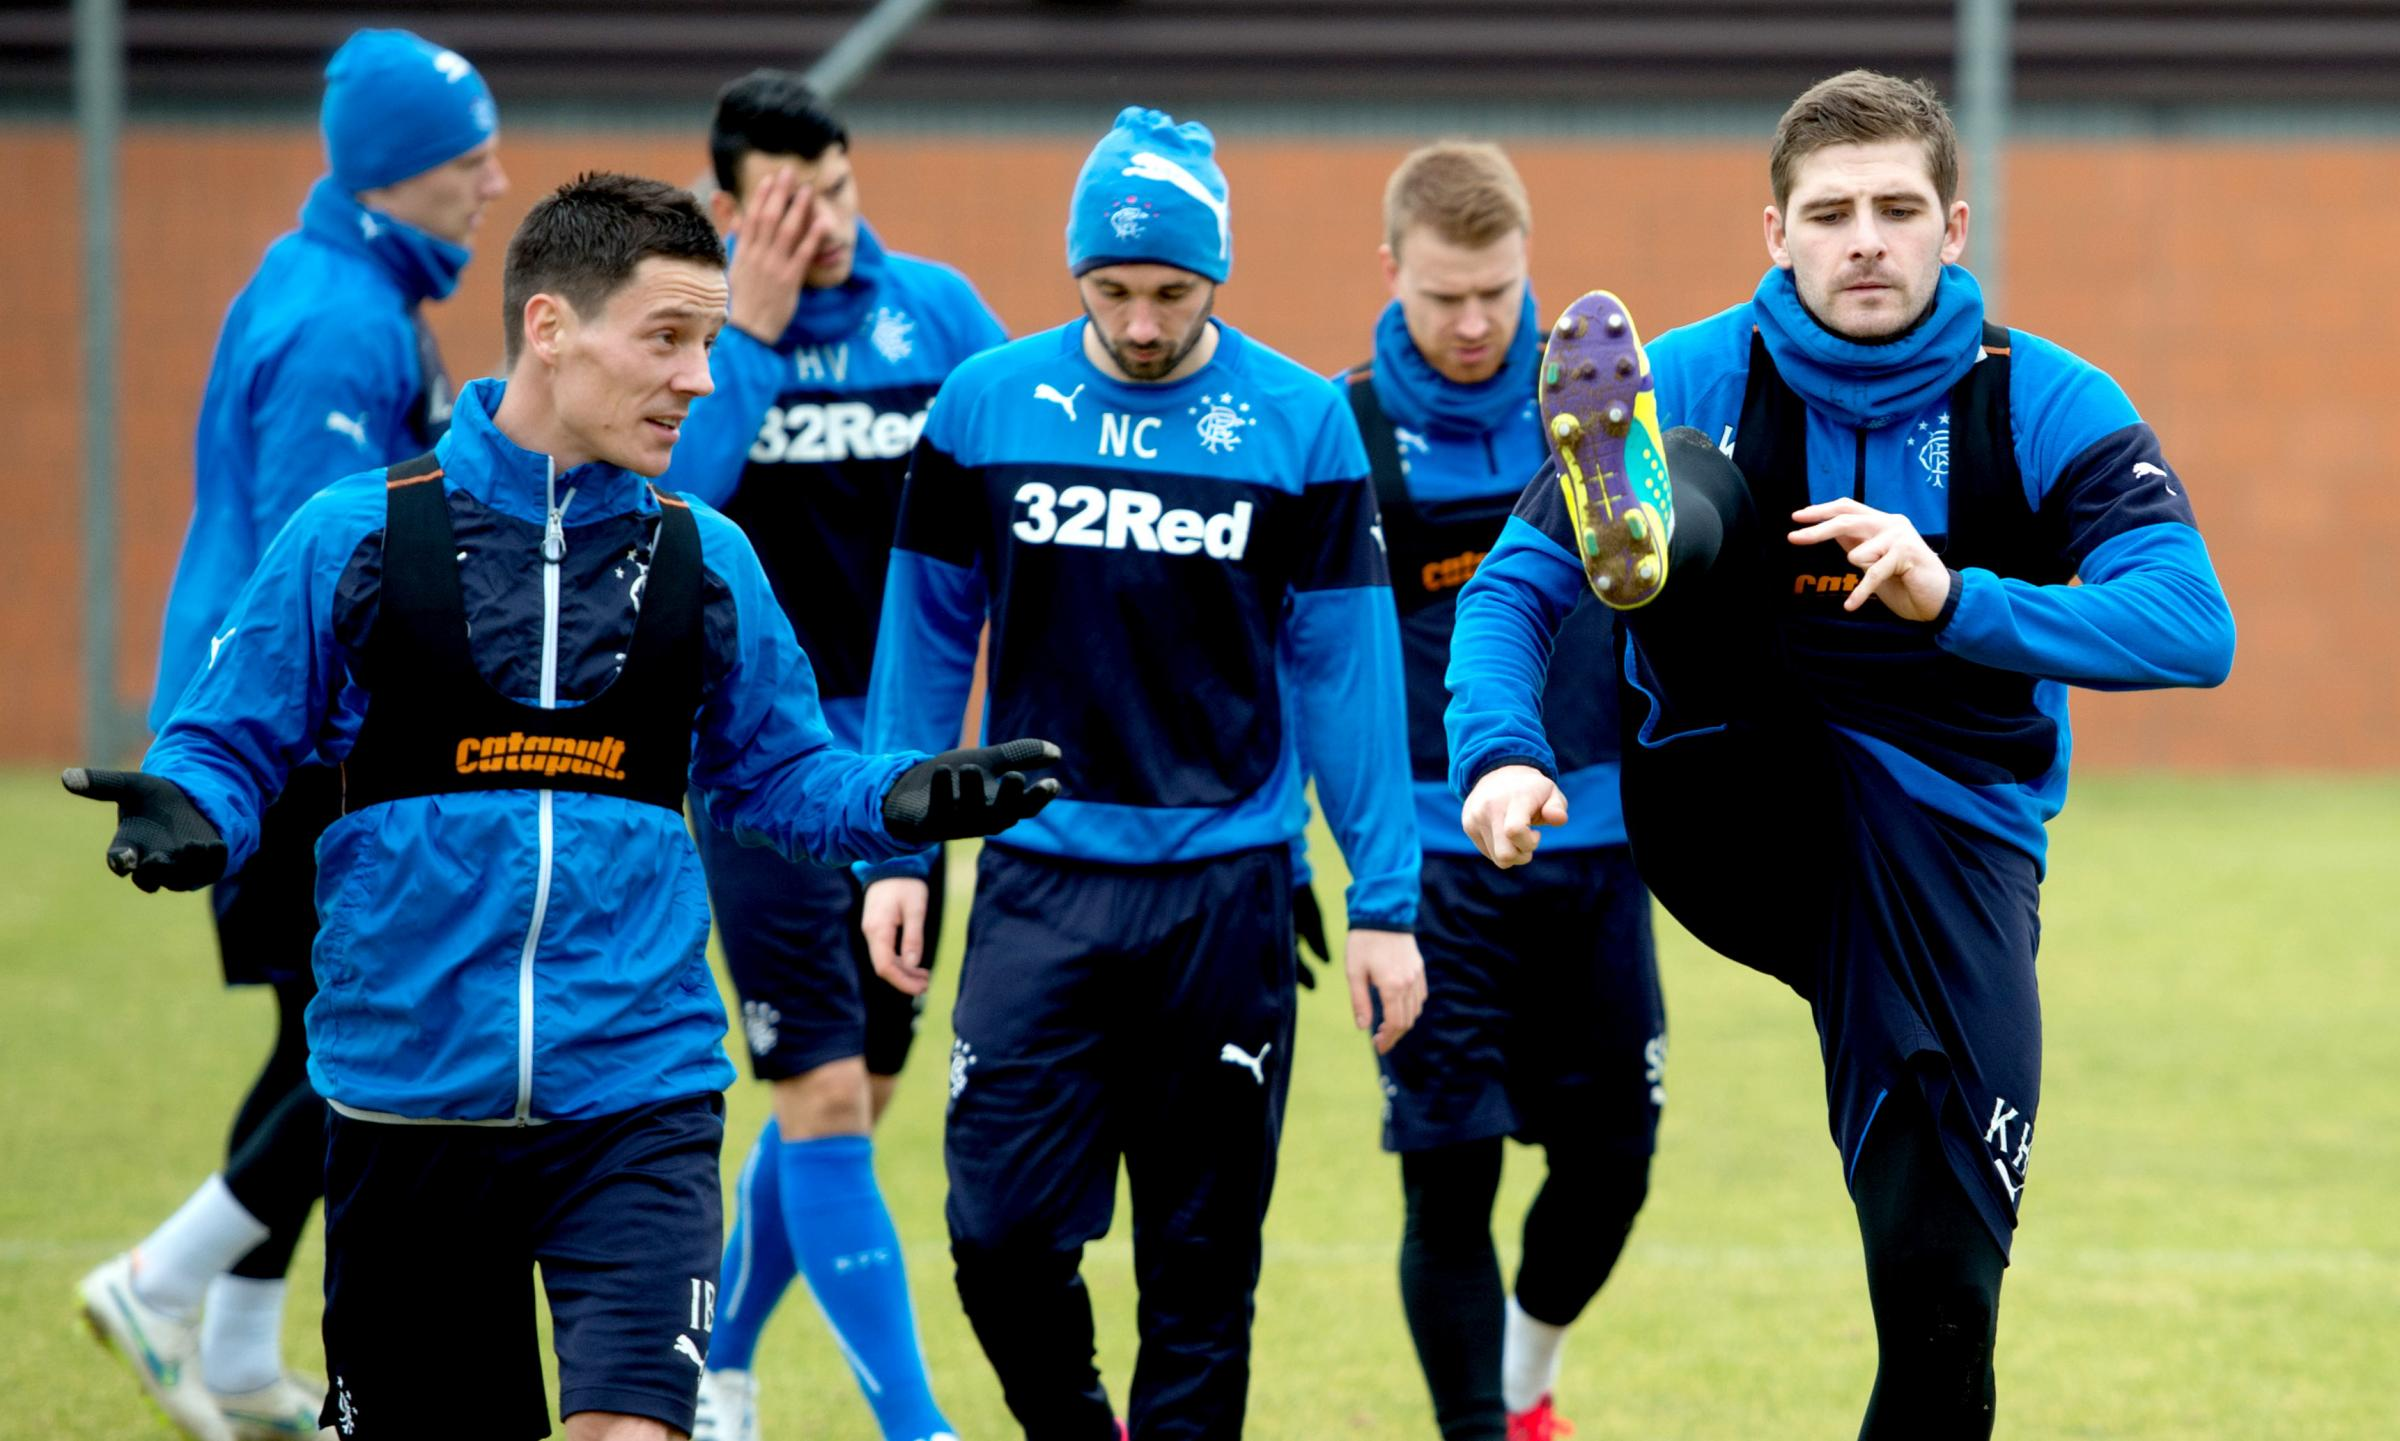 Kyle Hutton: Crisis and cuts made the Rangers squad even closer in 2012 - they'll do the same thing now